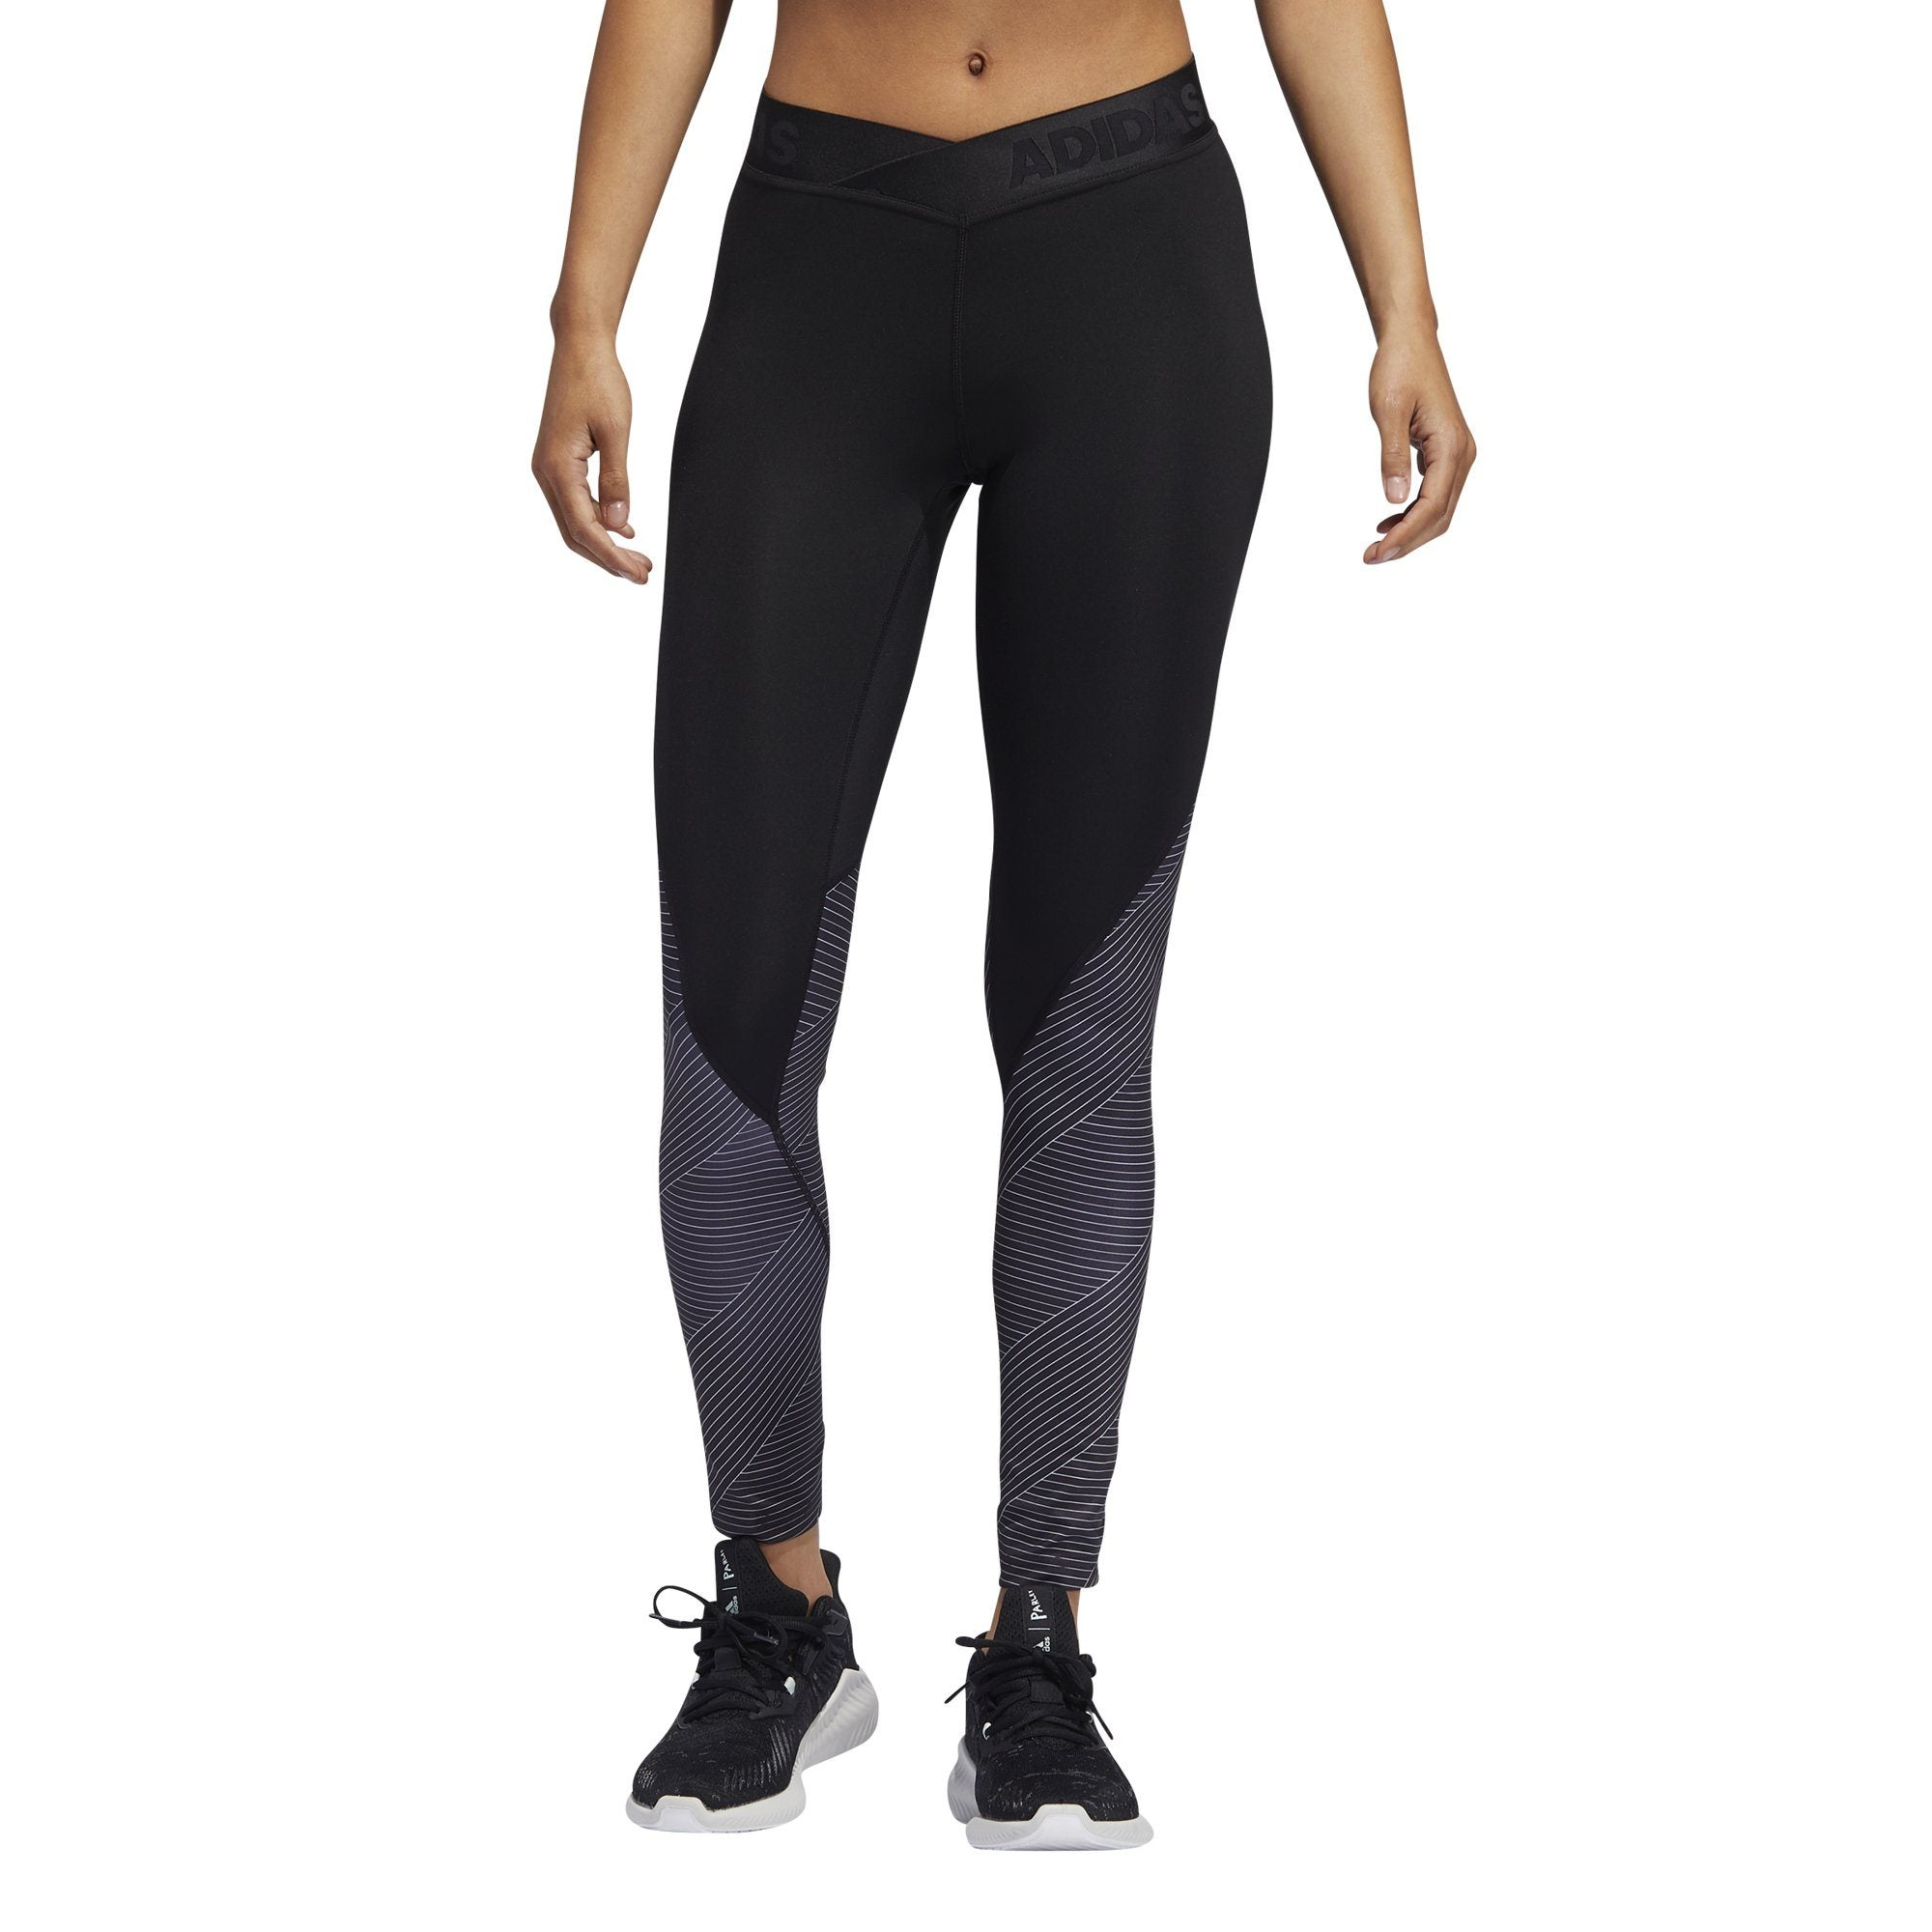 Adidas Womens Alphaskin 7/8 Tights - black SP-ApparelTights-Womens Adidas